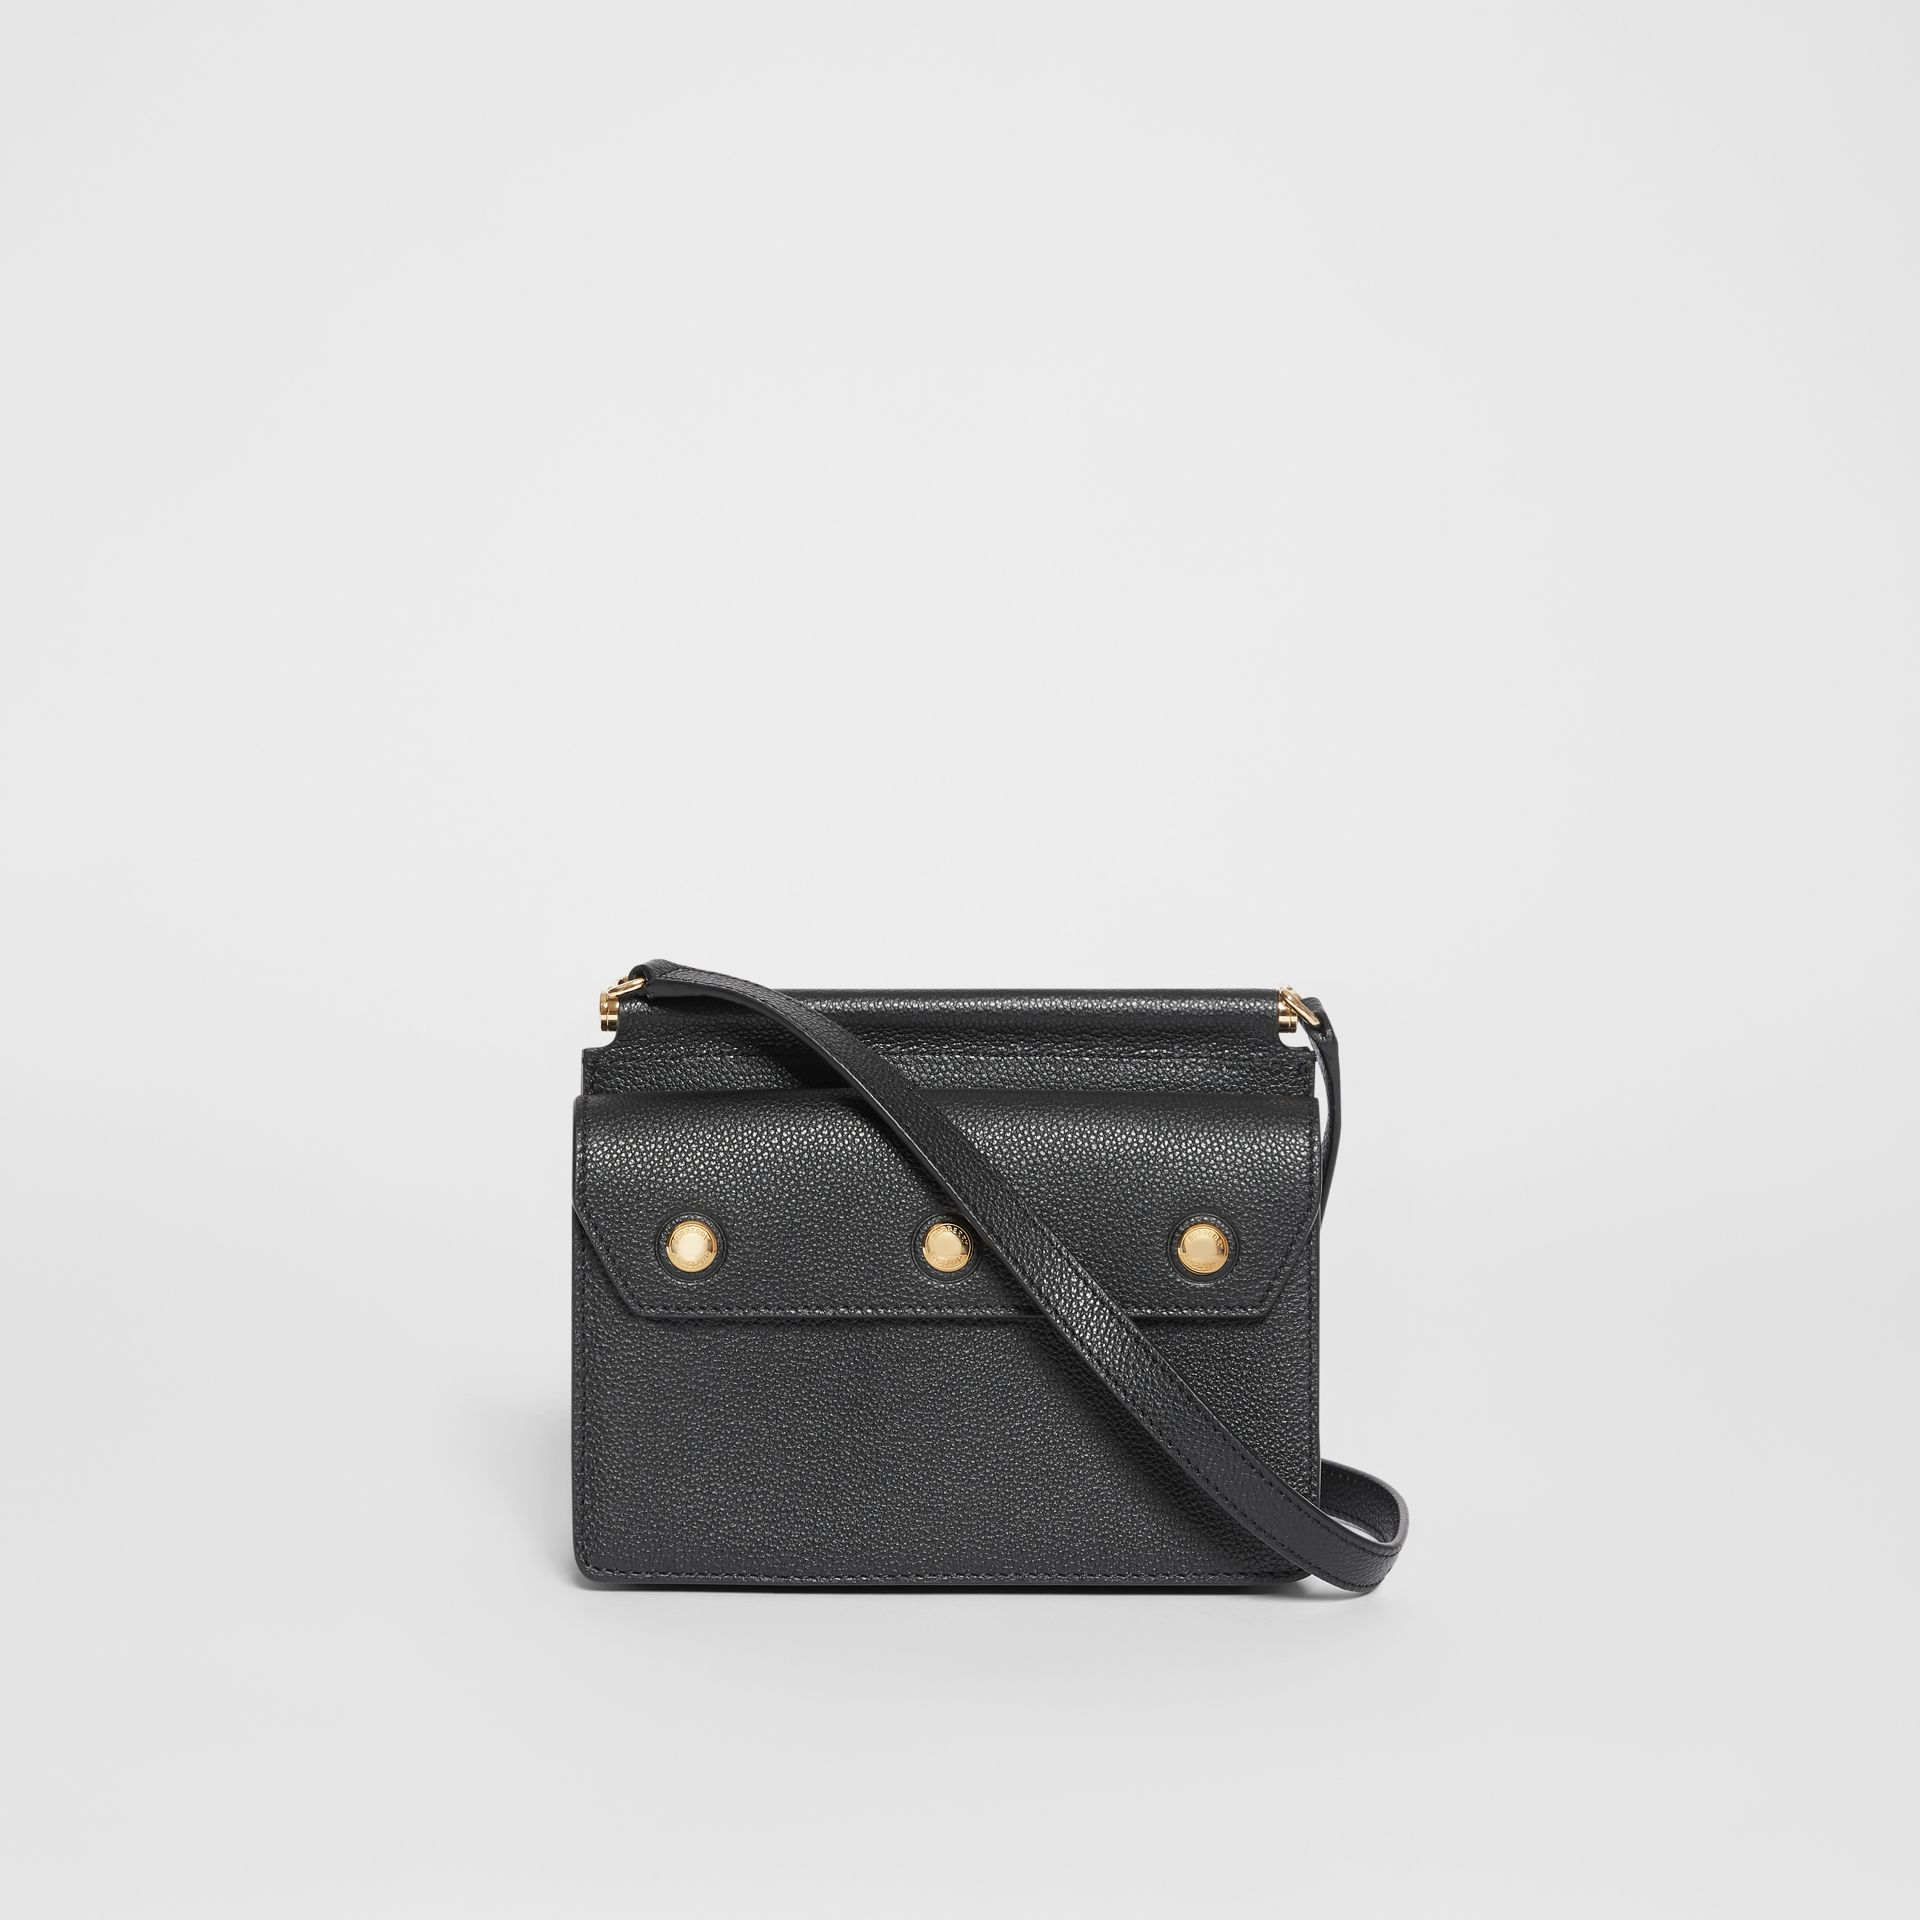 Mini Leather Title Bag with Pocket Detail in Black - Women | Burberry - gallery image 7